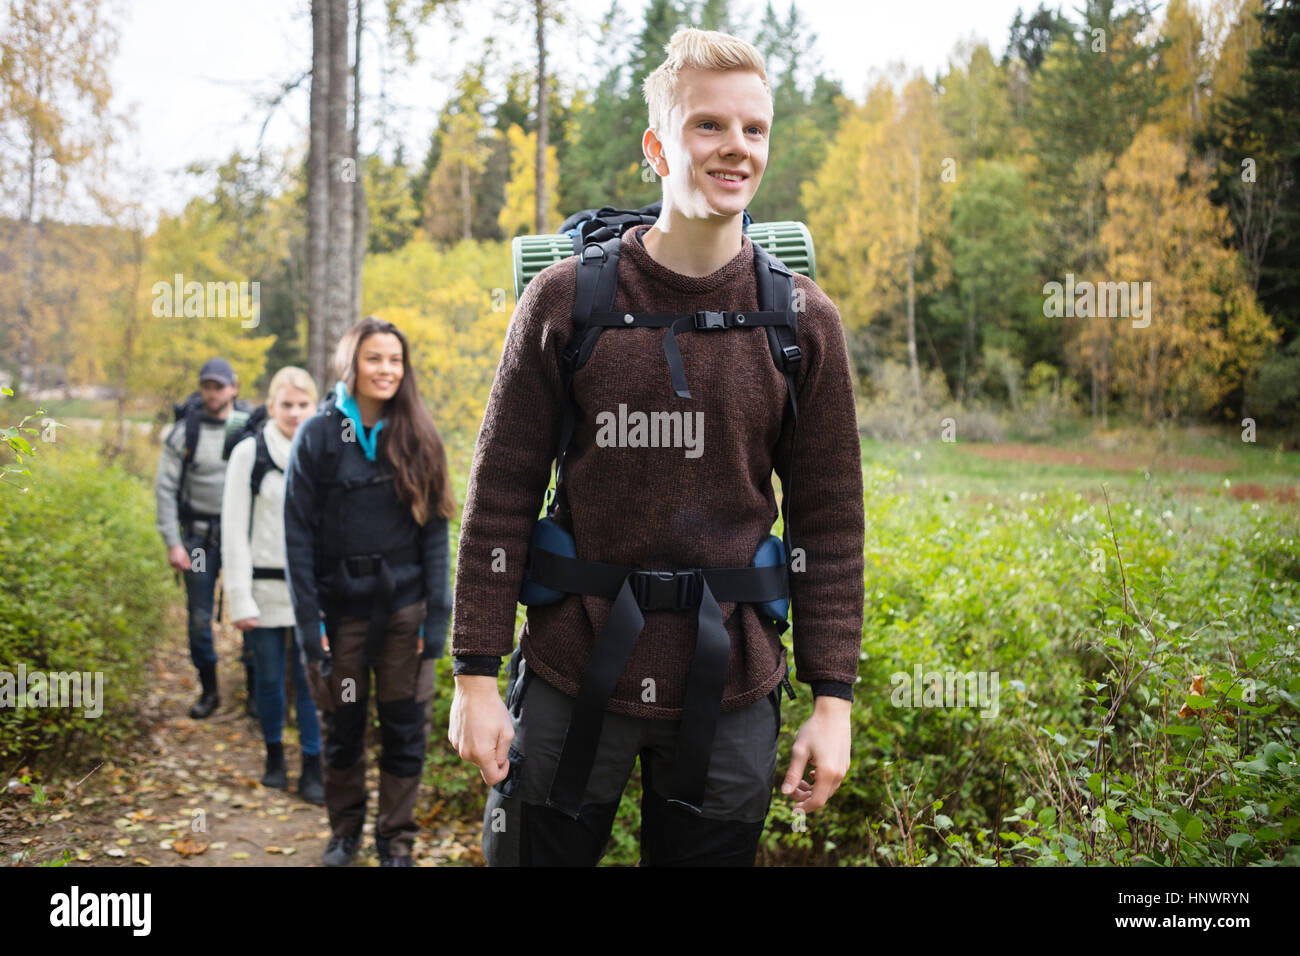 Smiling Man With Friends Hiking On Forest Trail - Stock Image